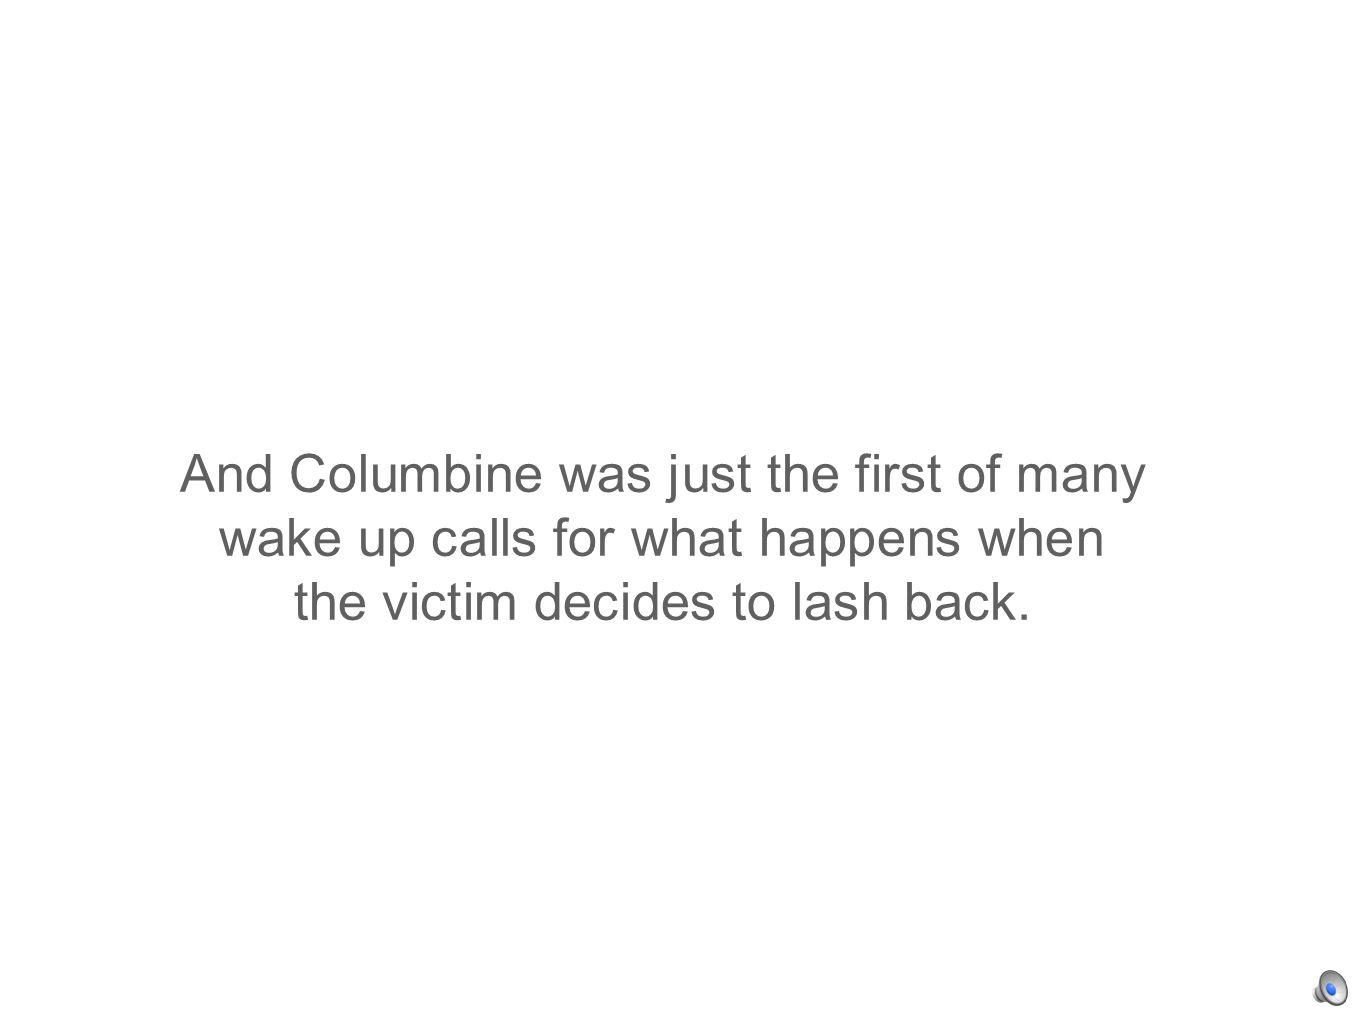 And Columbine was just the first of many wake up calls for what happens when the victim decides to lash back.